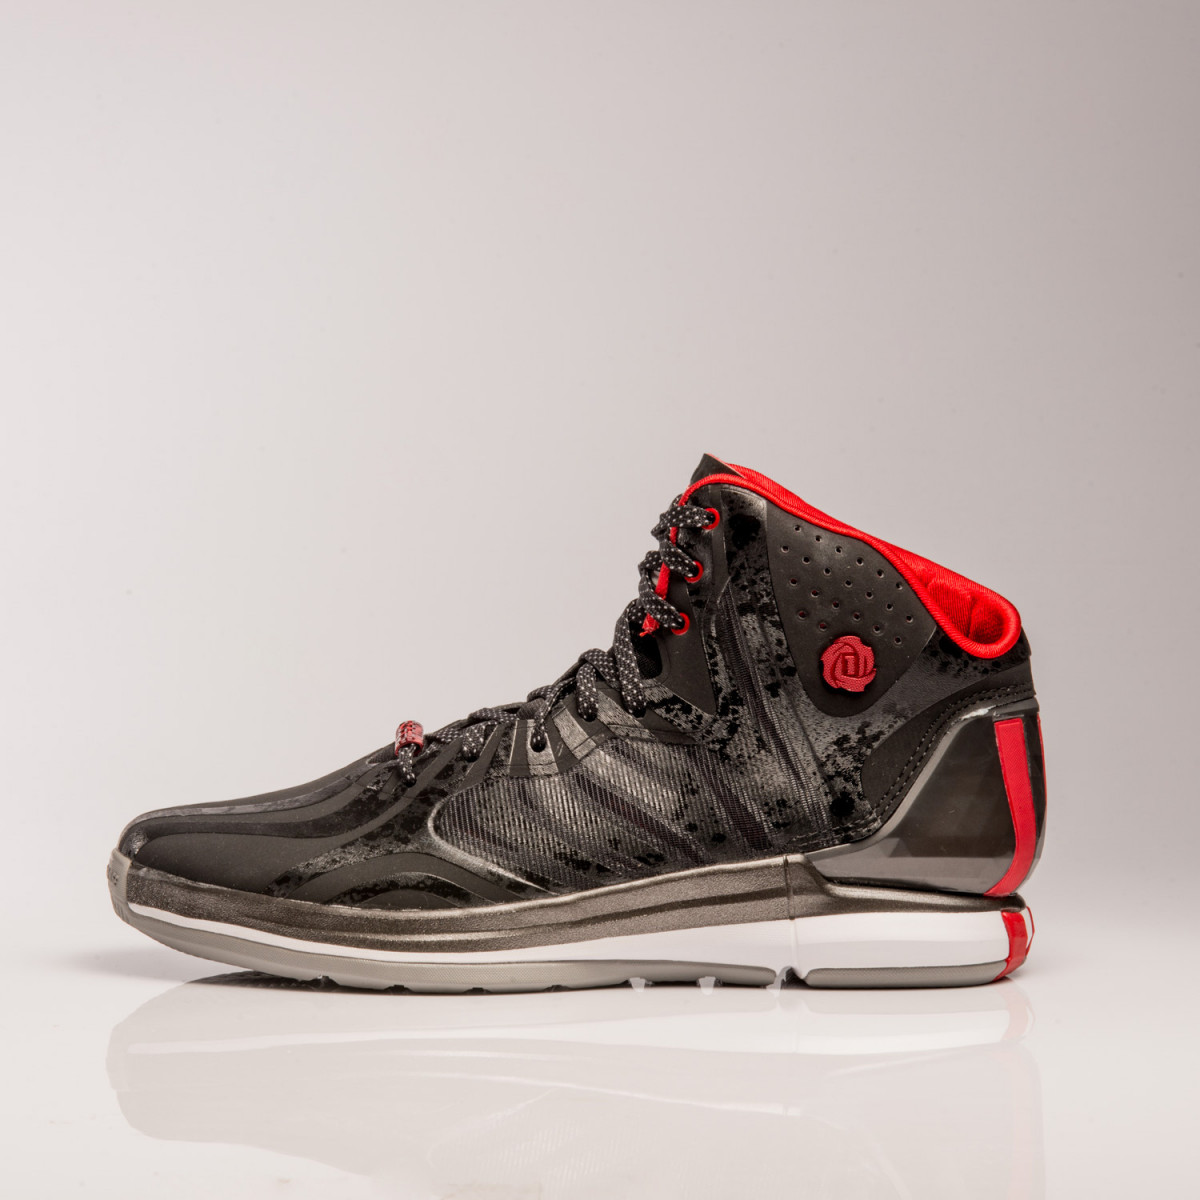 BOTAS ADIDAS BASKETBALL D ROSE 4.5